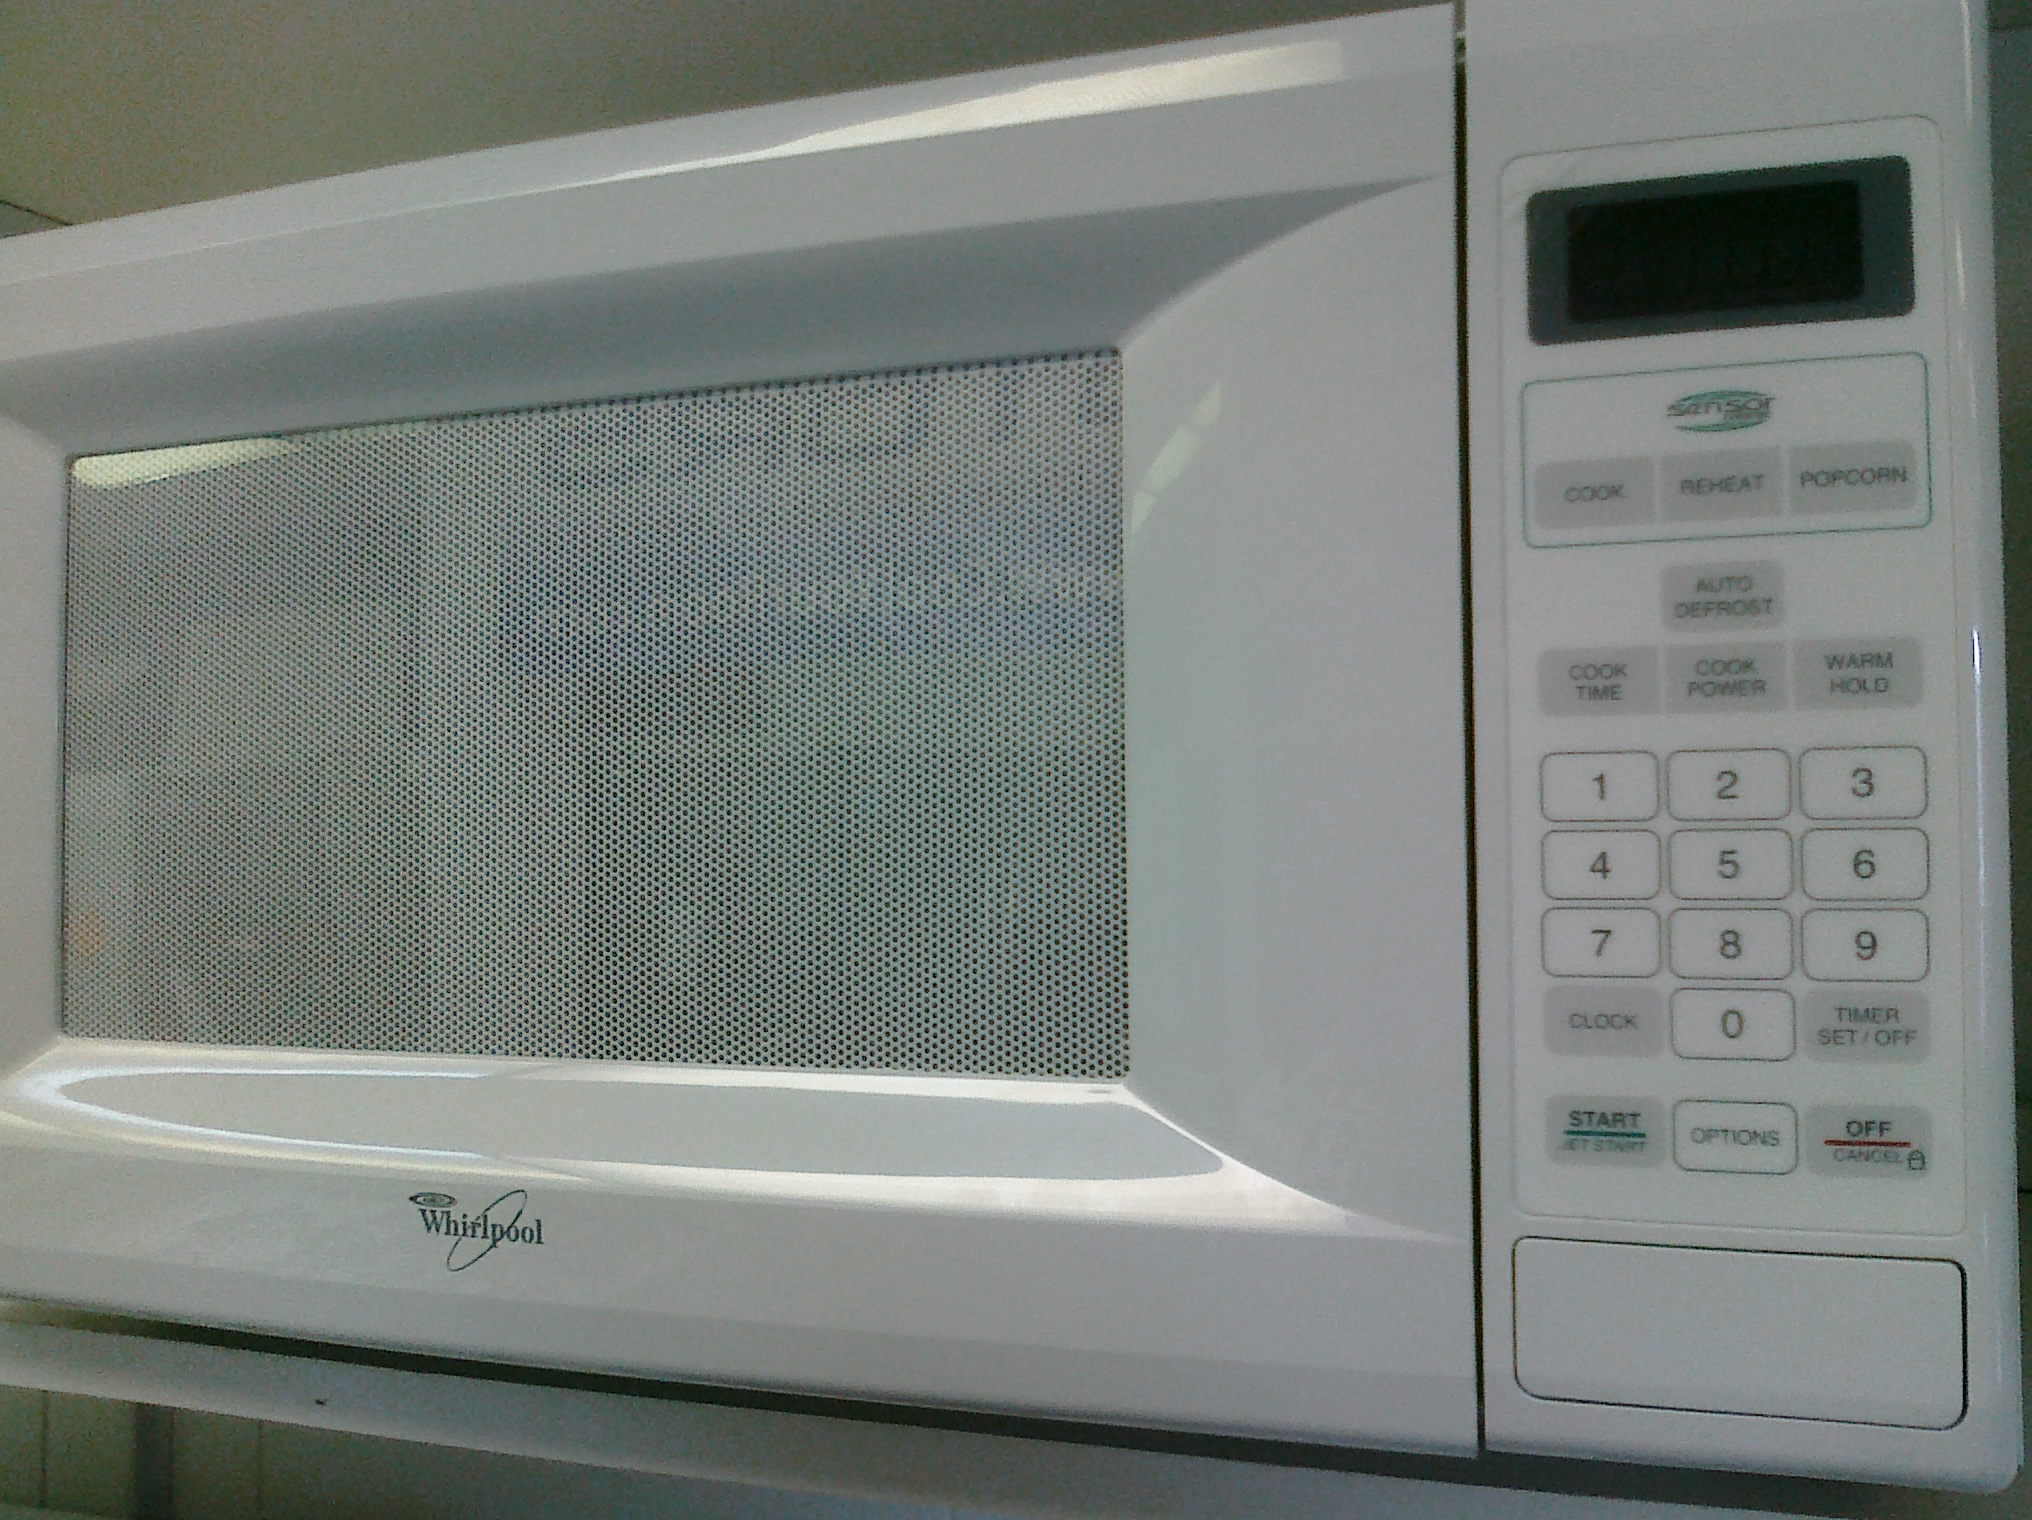 Countertop Microwave What To Look For : Whirlpool MT4155SPQ Countertop Microwave Oven, White Feders ...